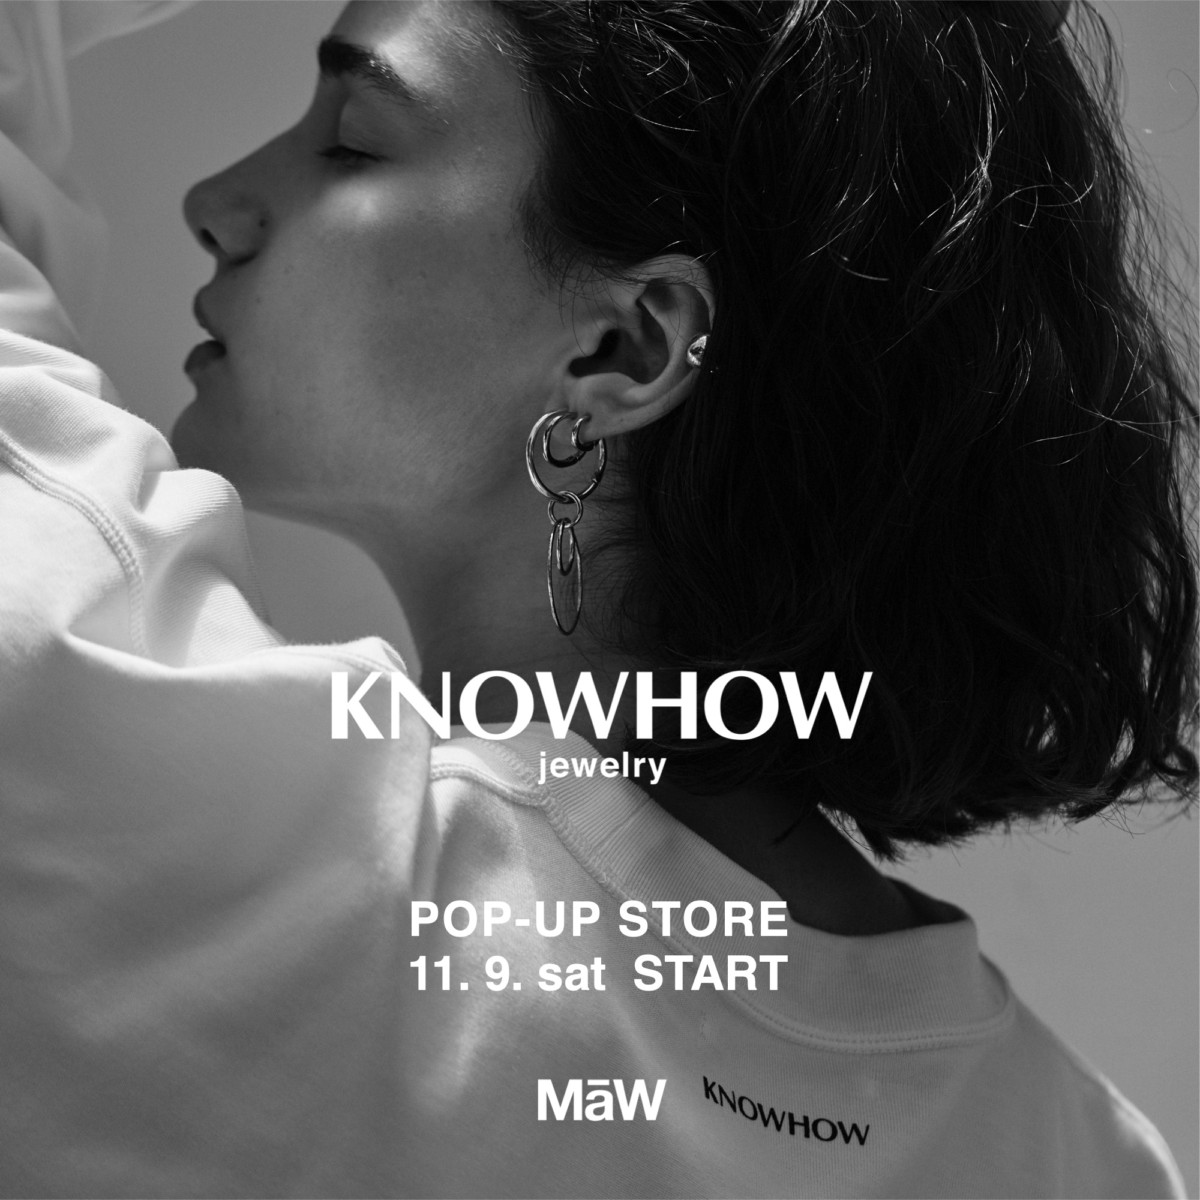 KNOWHOW_ビジュアル1